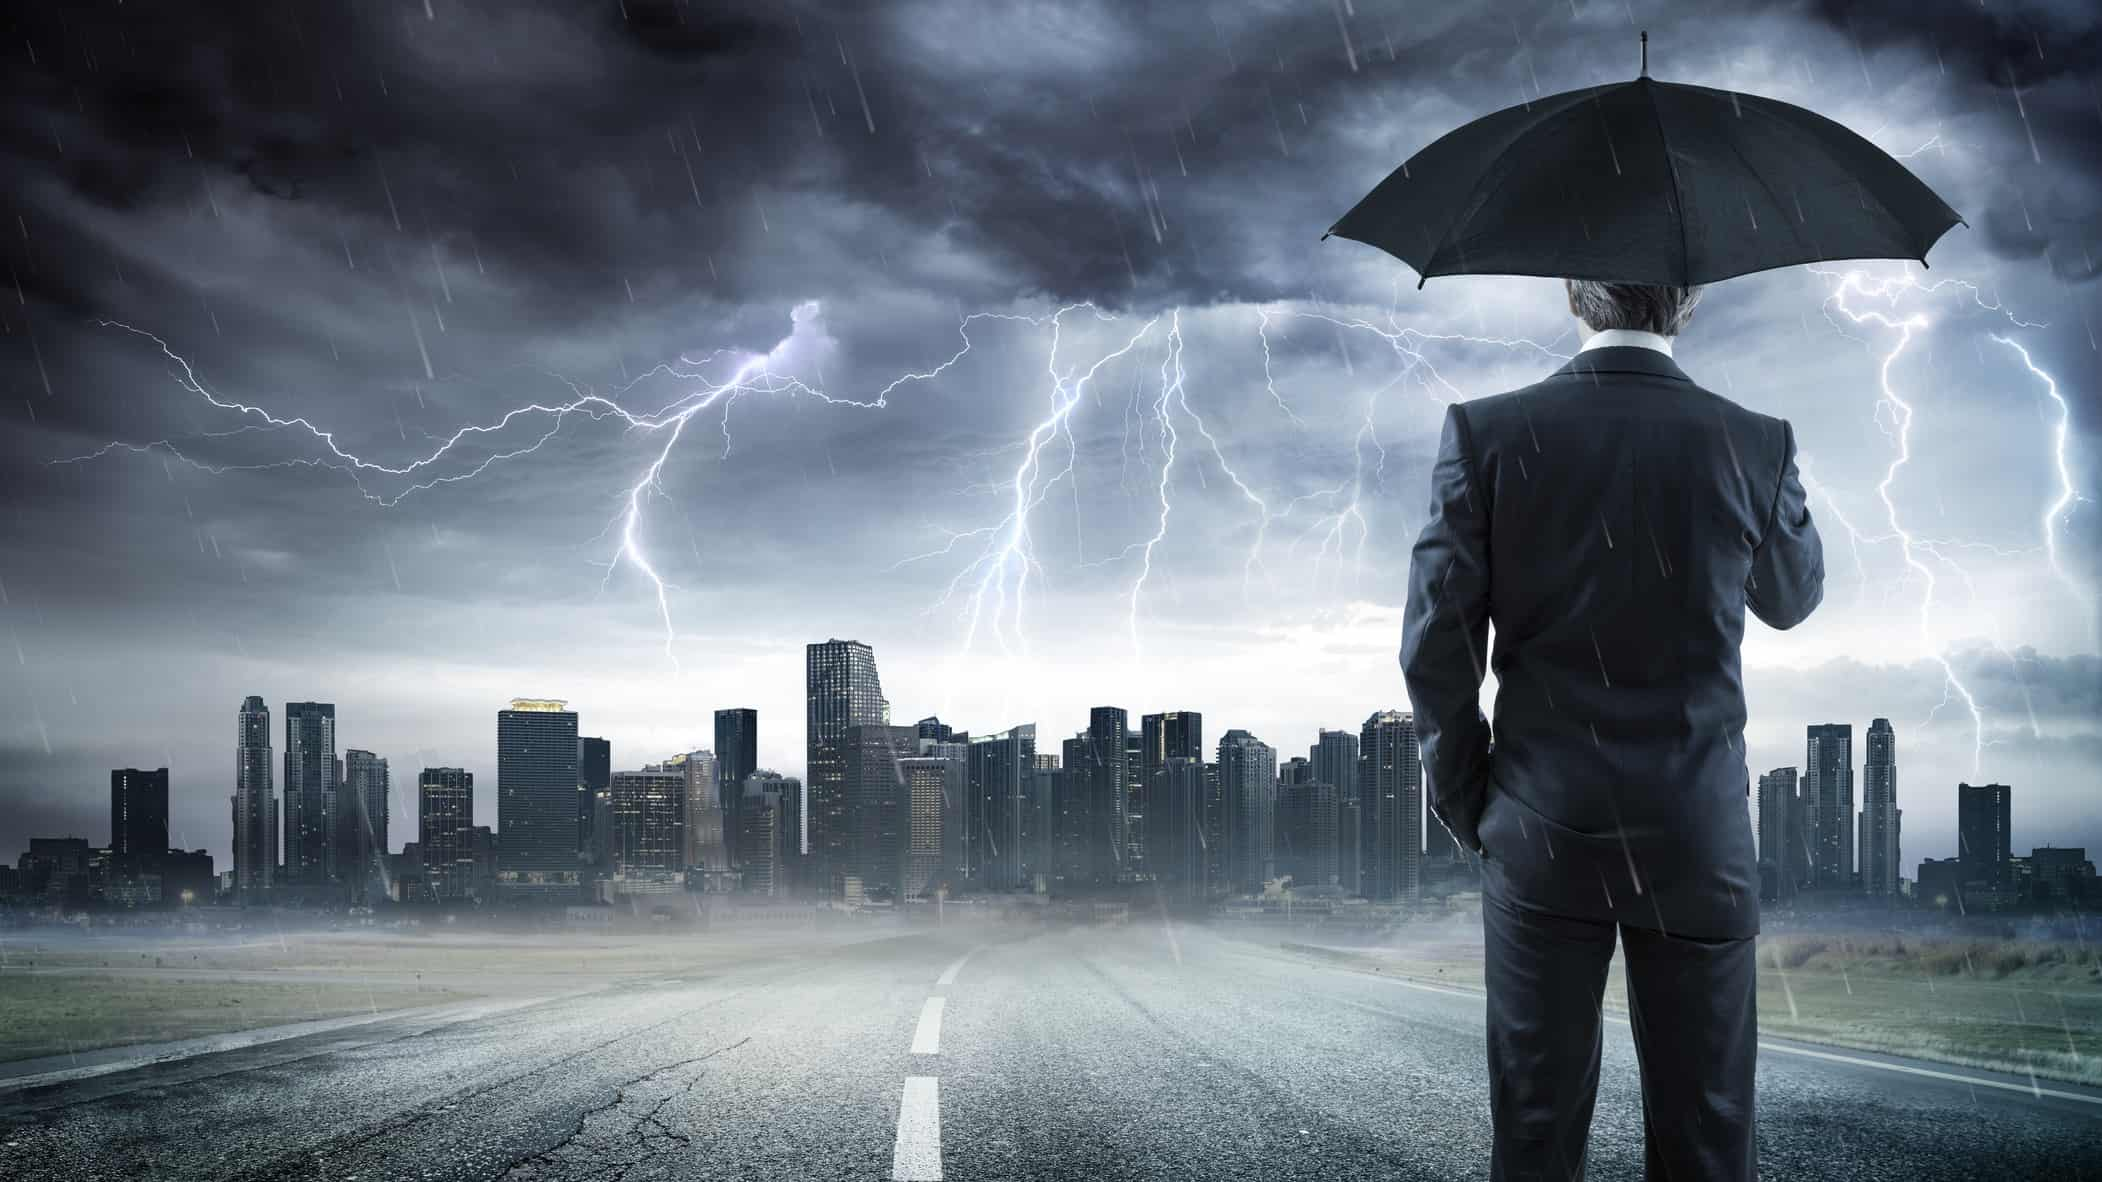 man holding umbrella looking at storm over city, recession, asx 200 shares